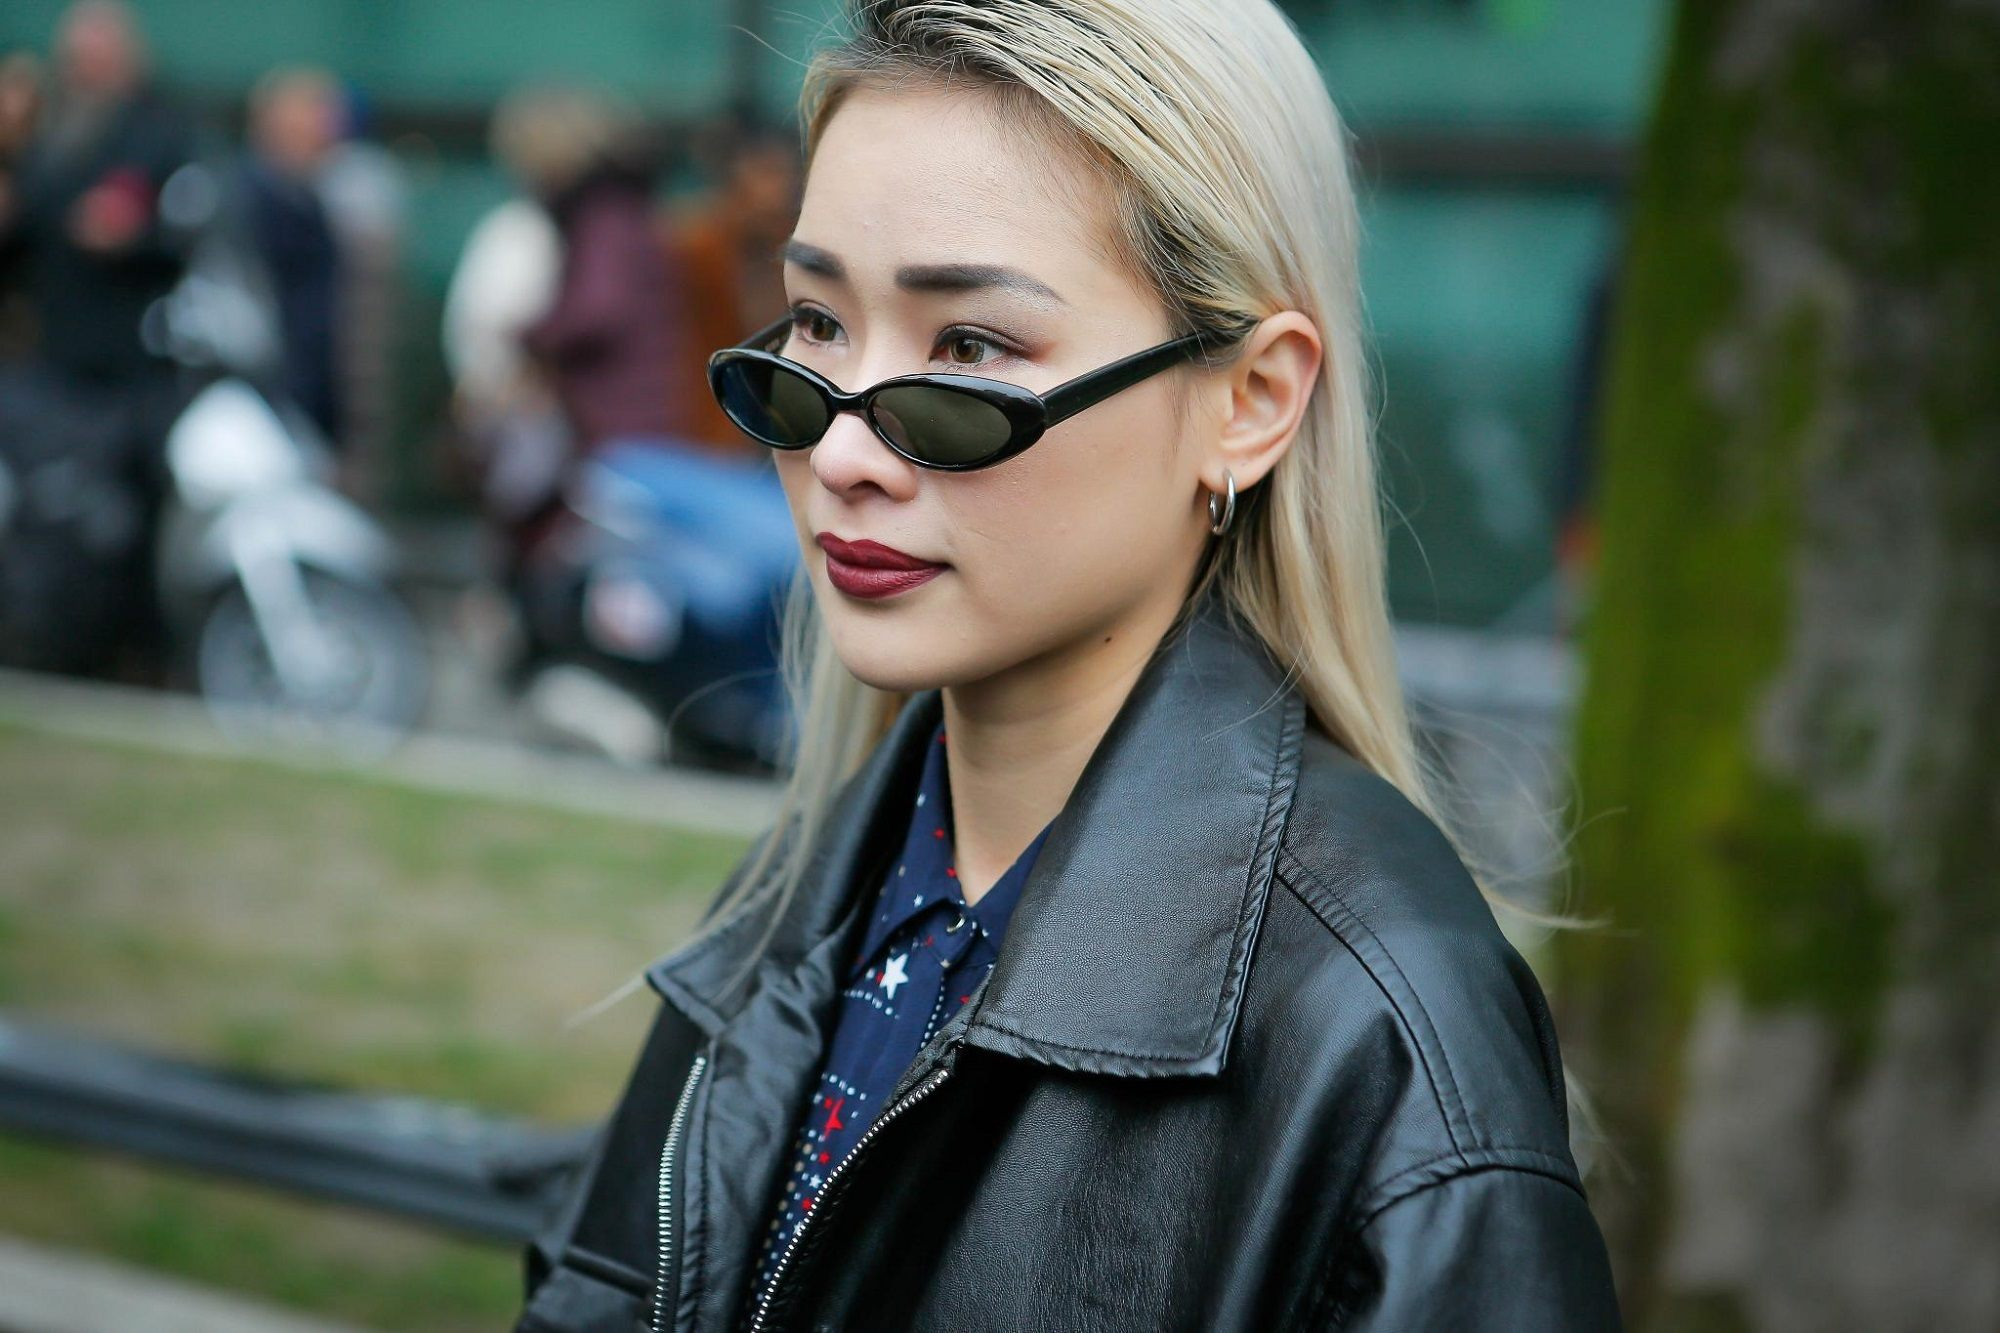 Light blonde hair: Woman with blonde hair and wearing a leather jacket in an outdoor location